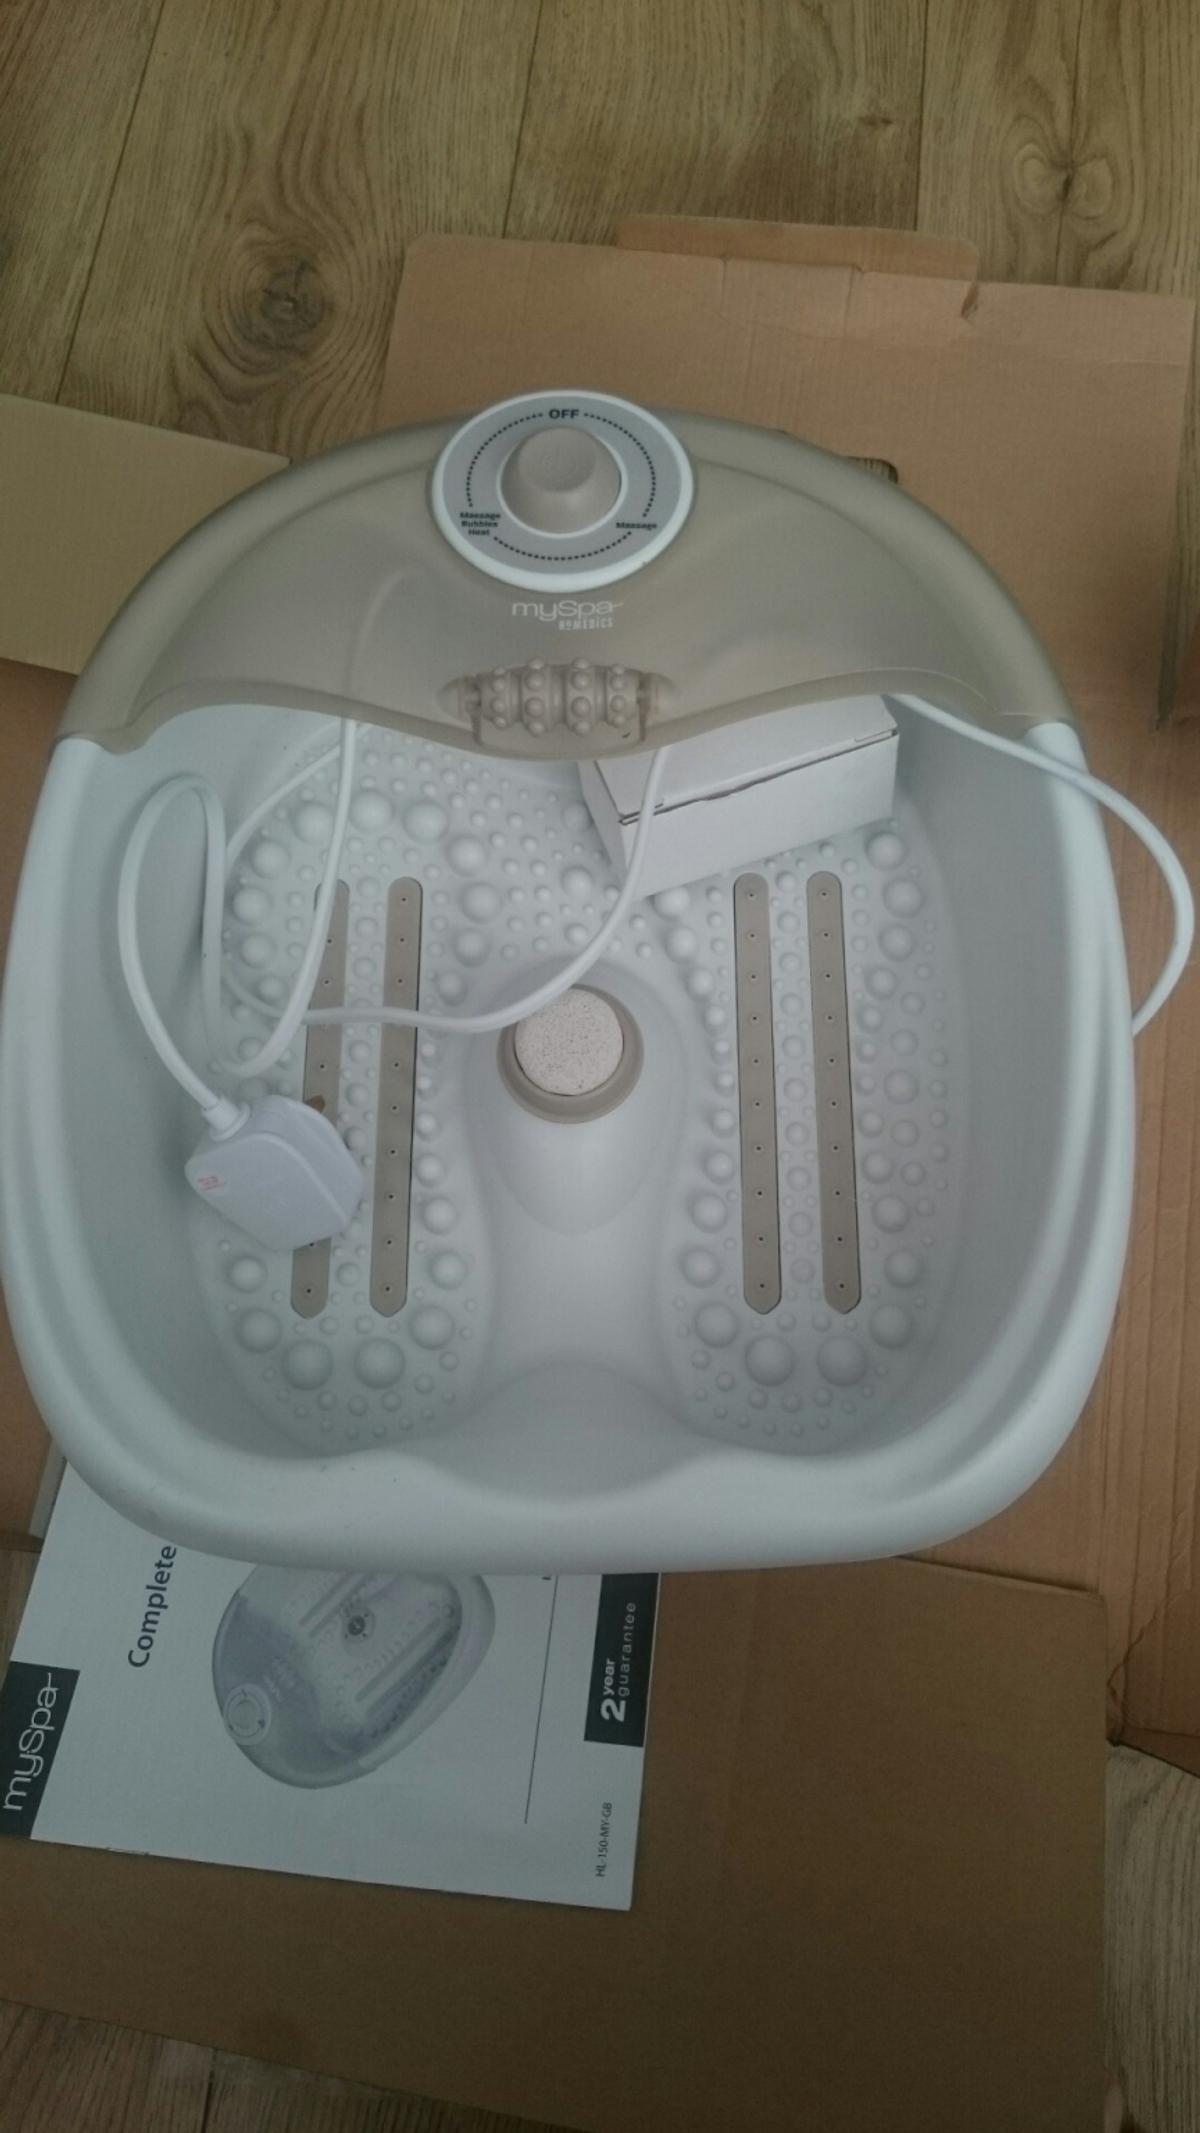 Myspa Homedics complete pedicure foot spa. unwanted gift. Used once. collection only